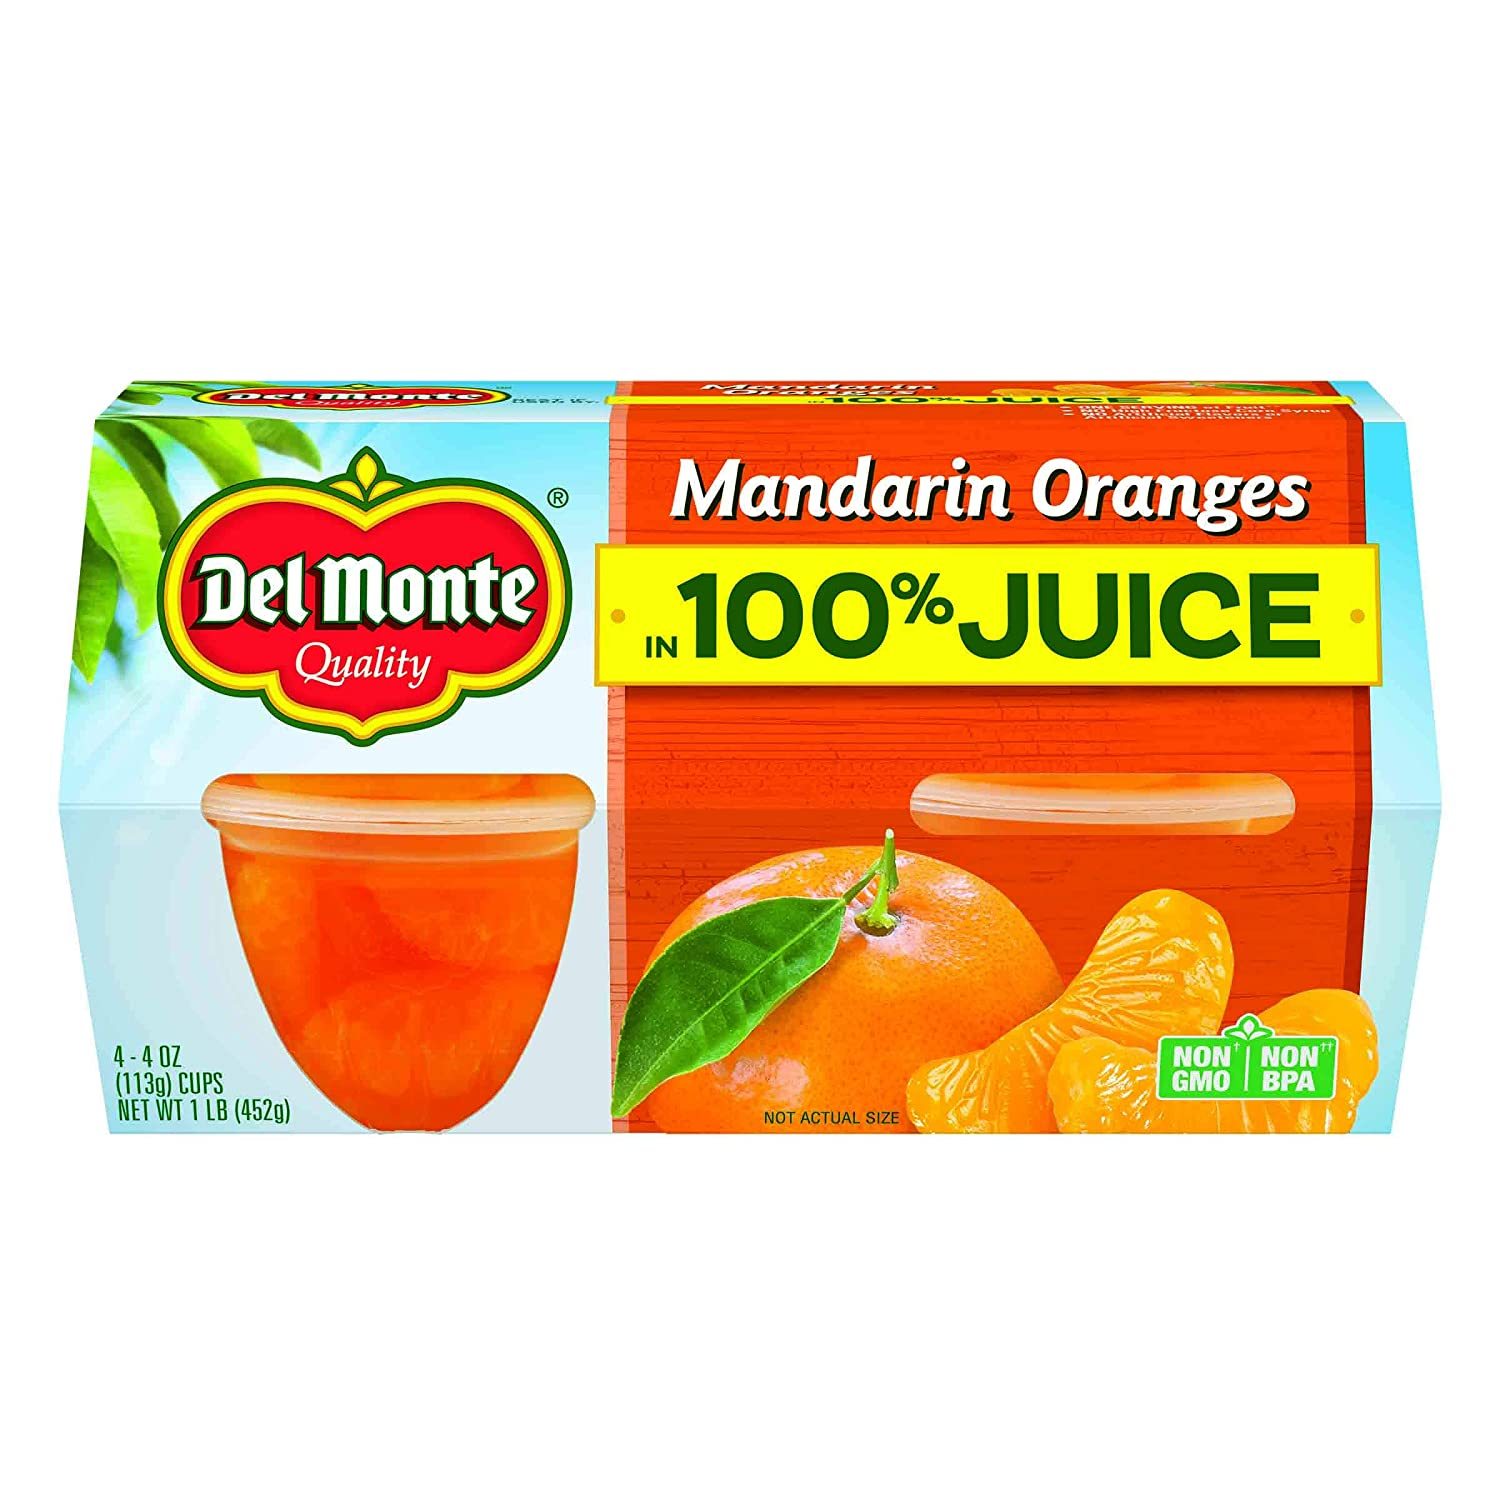 Del Monte Mandarin Orange Fruit Cup, 16 ounce